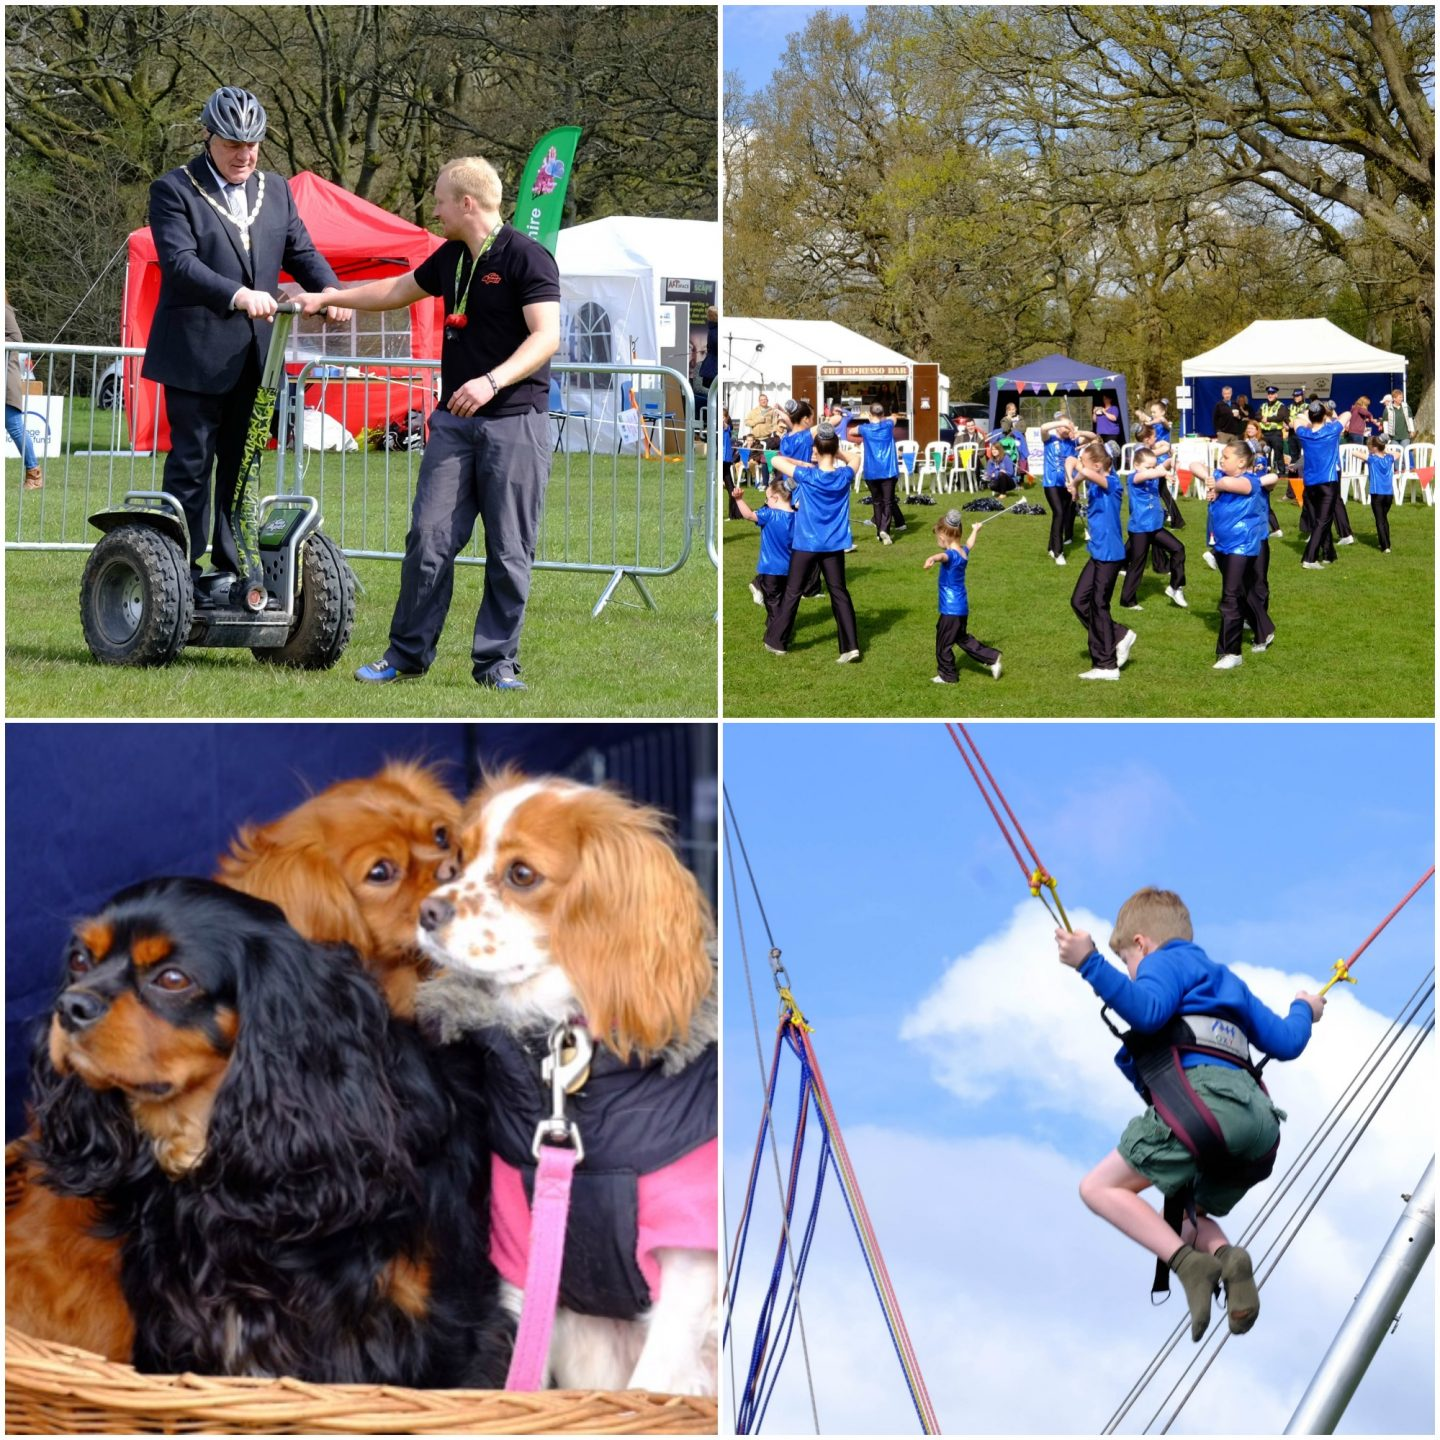 Forest Activities Festival images 2016